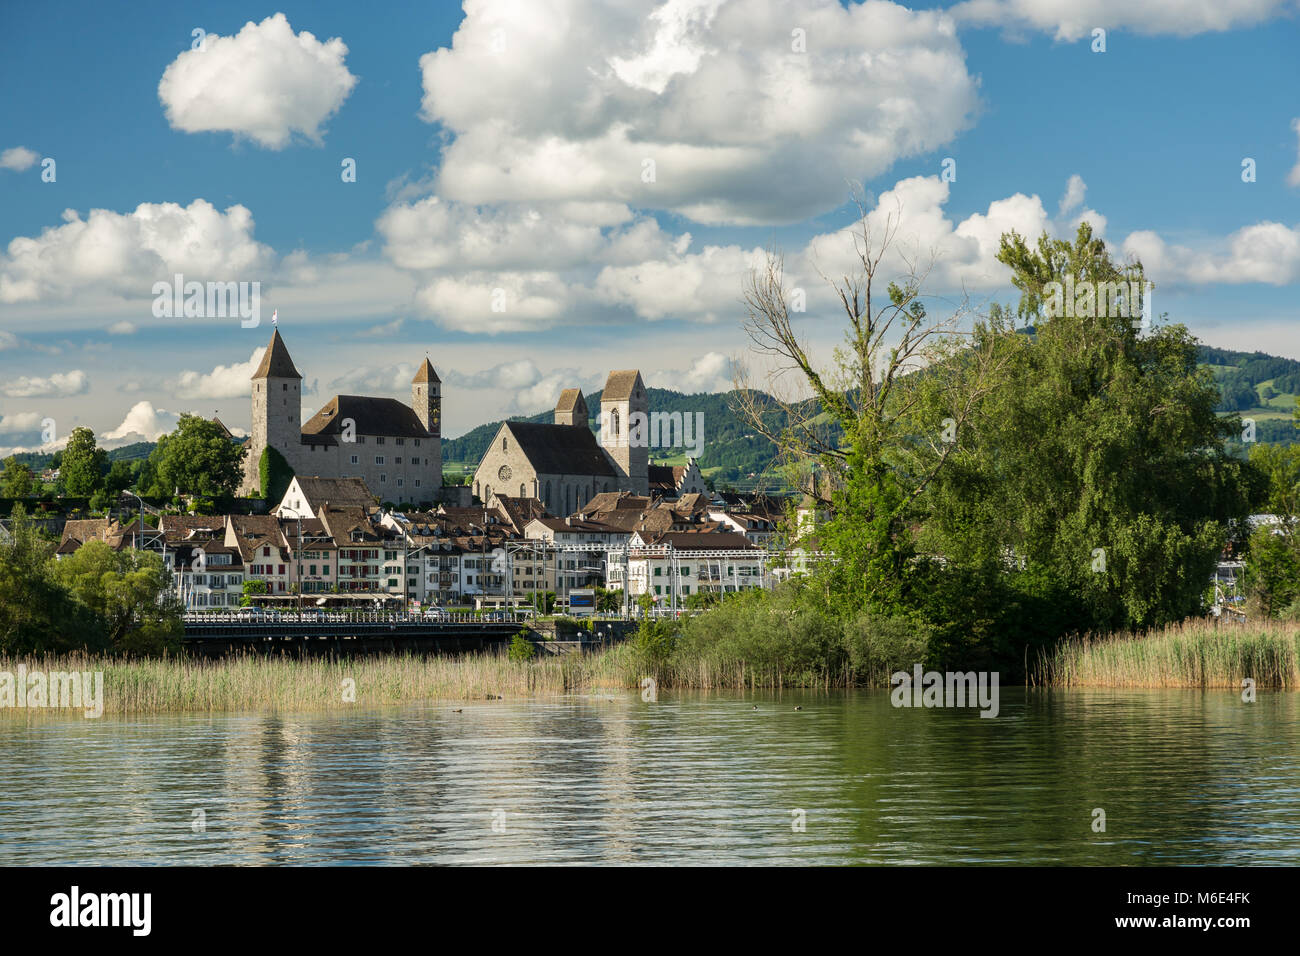 Old castle and church in Rapperswil, Switzerland - Stock Image